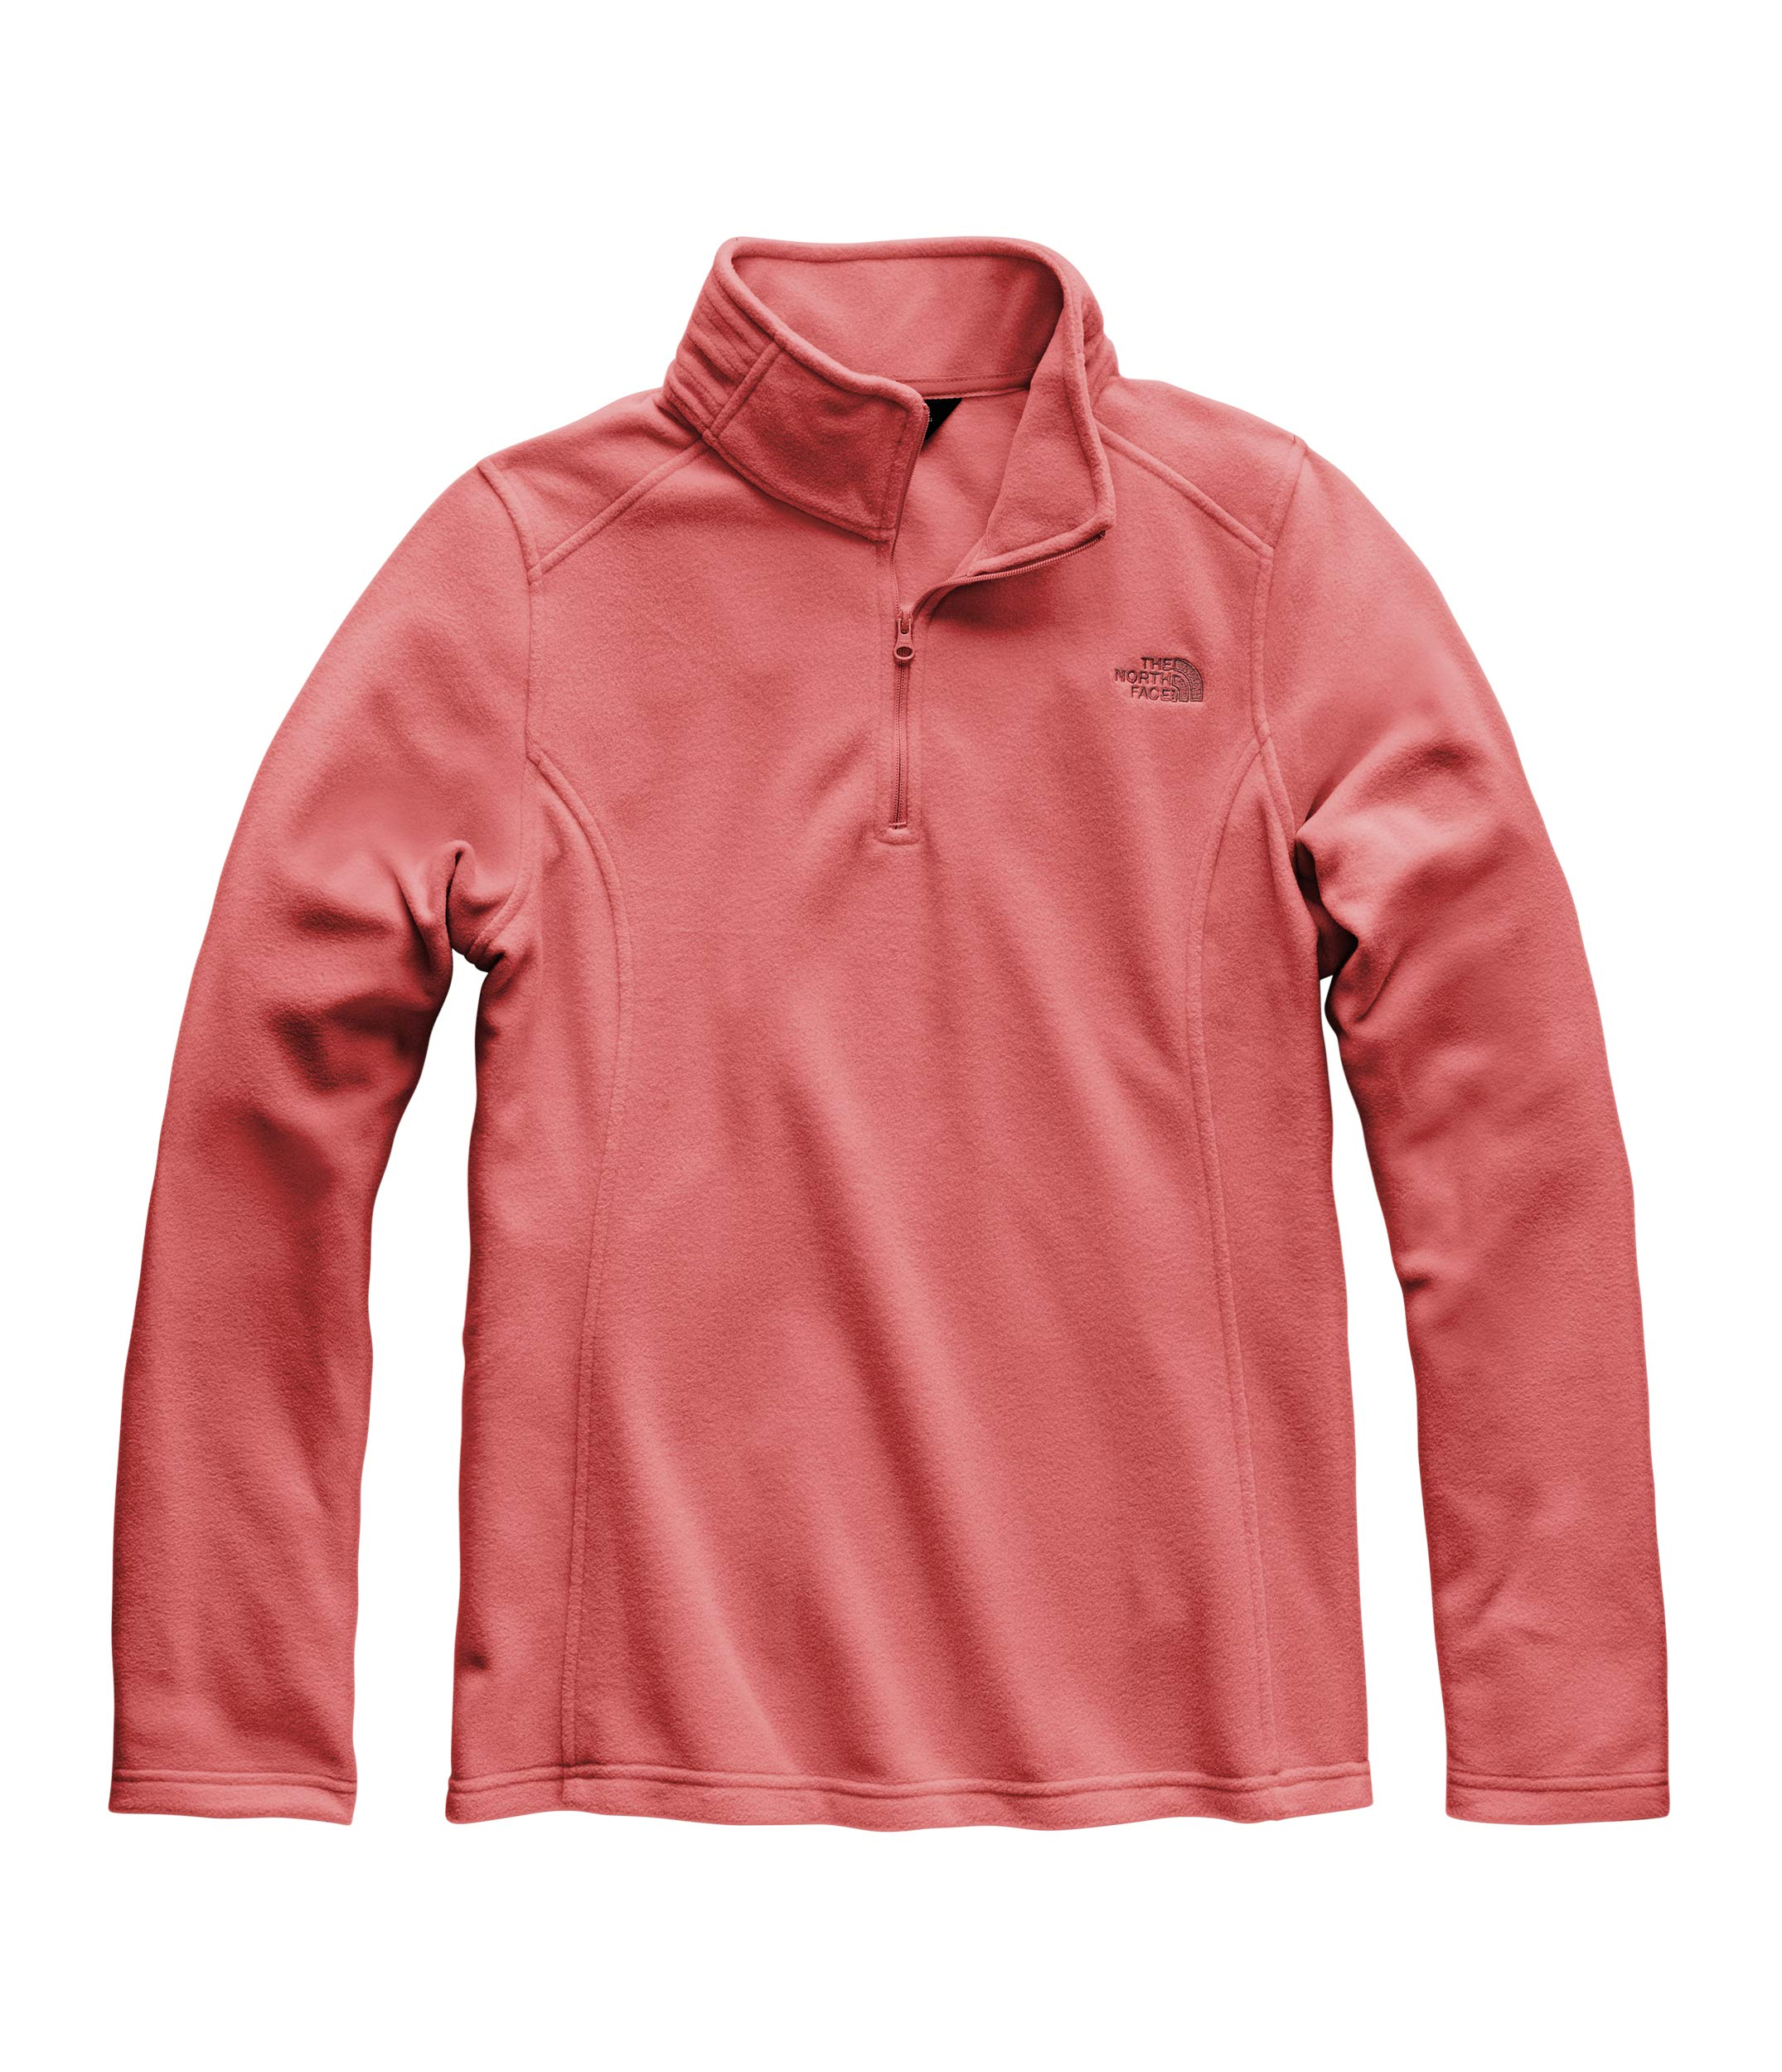 The North Face Women's Glacier ¼ Zip, Spiced Coral, Size XXL